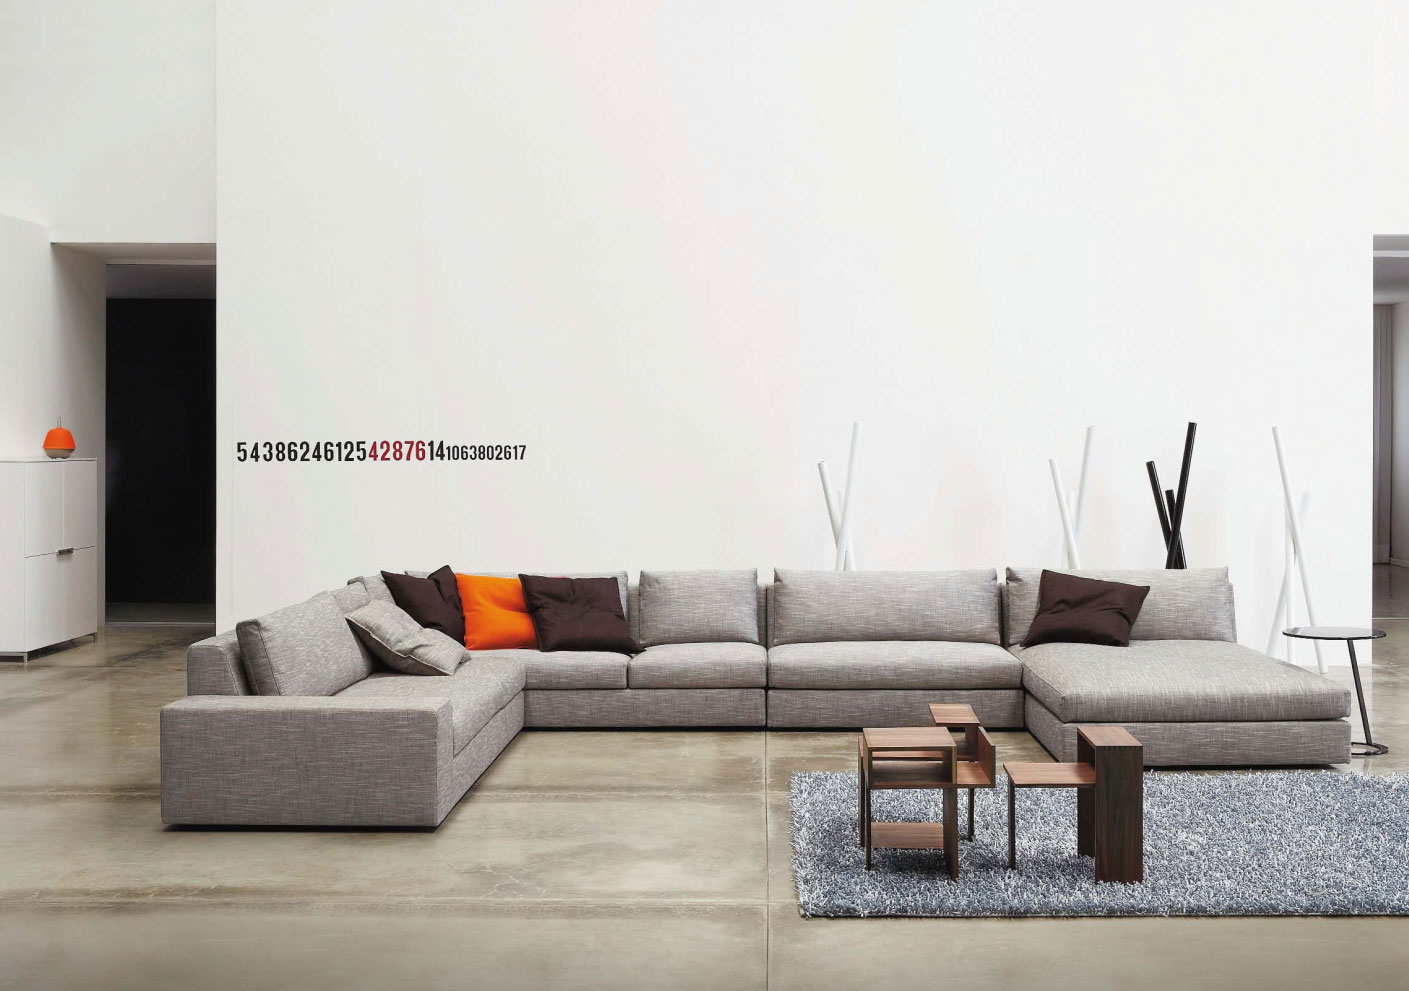 Ligne Roset Händler Contemporary Living Rooms: Ideas And Inspiration From